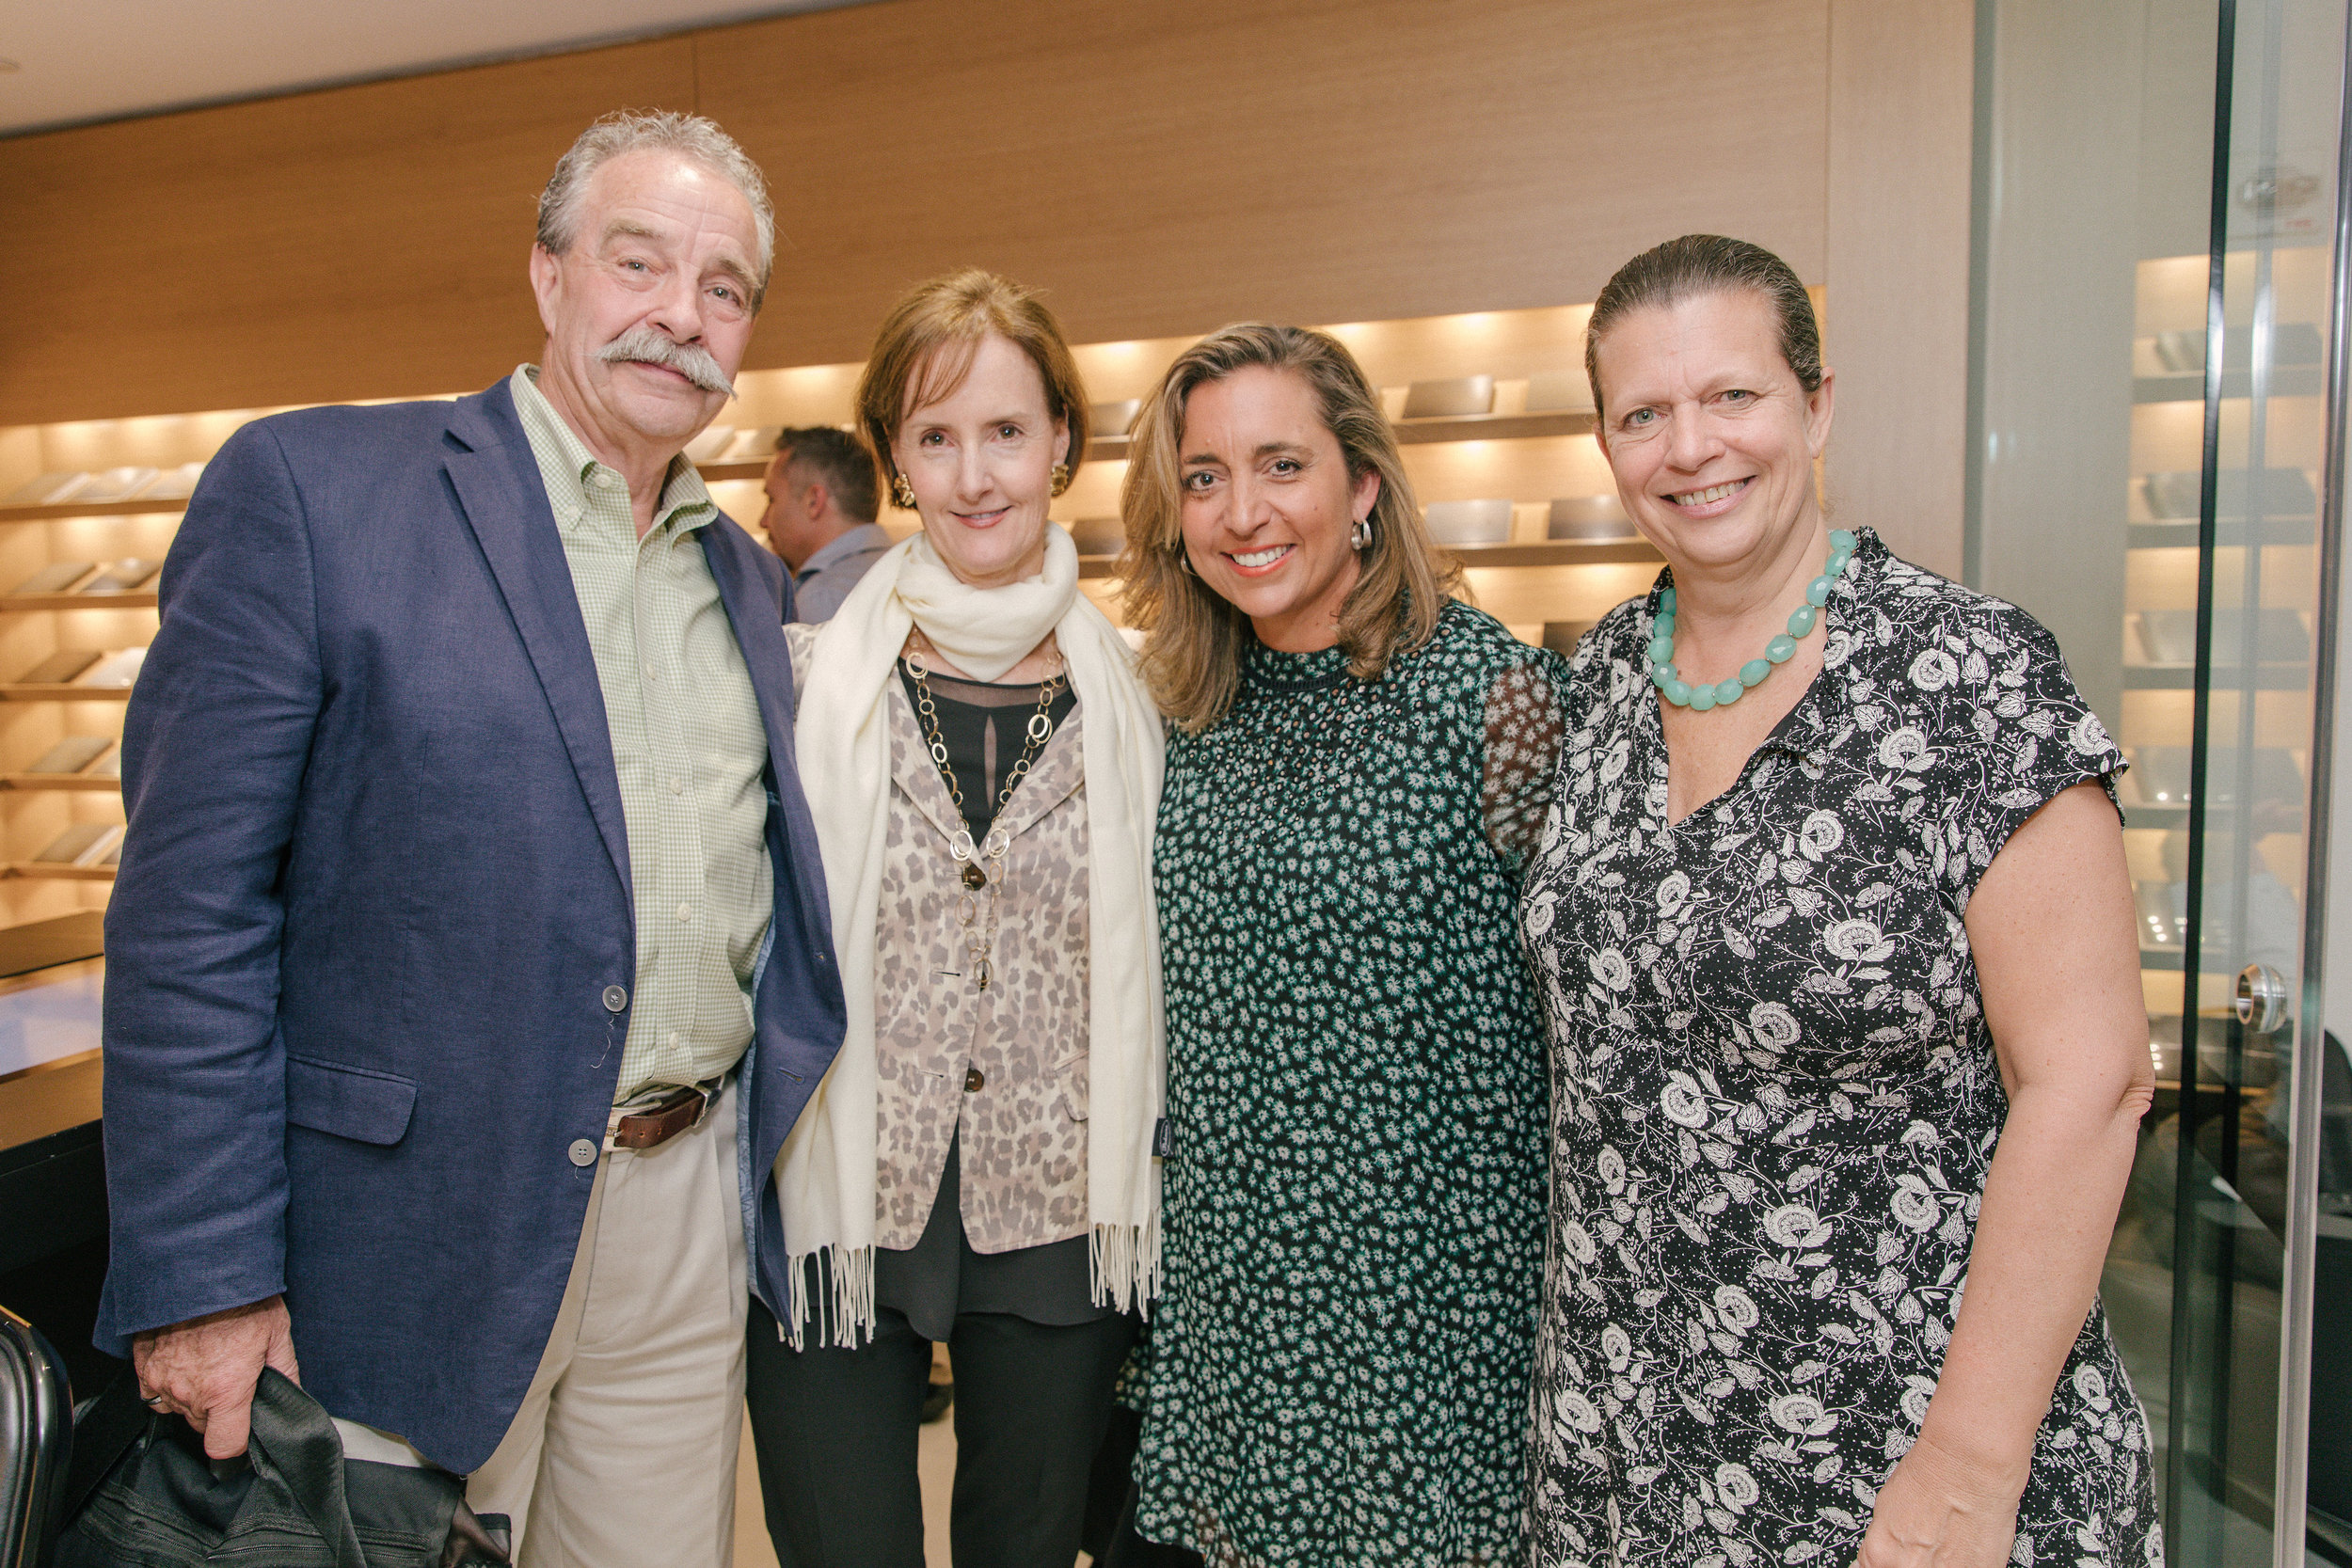 Michael Devonshire, Veranda's Kate Kelly Smith, Cosentino's Patty Dominguez, and Veranda's Lisa Lachowetz